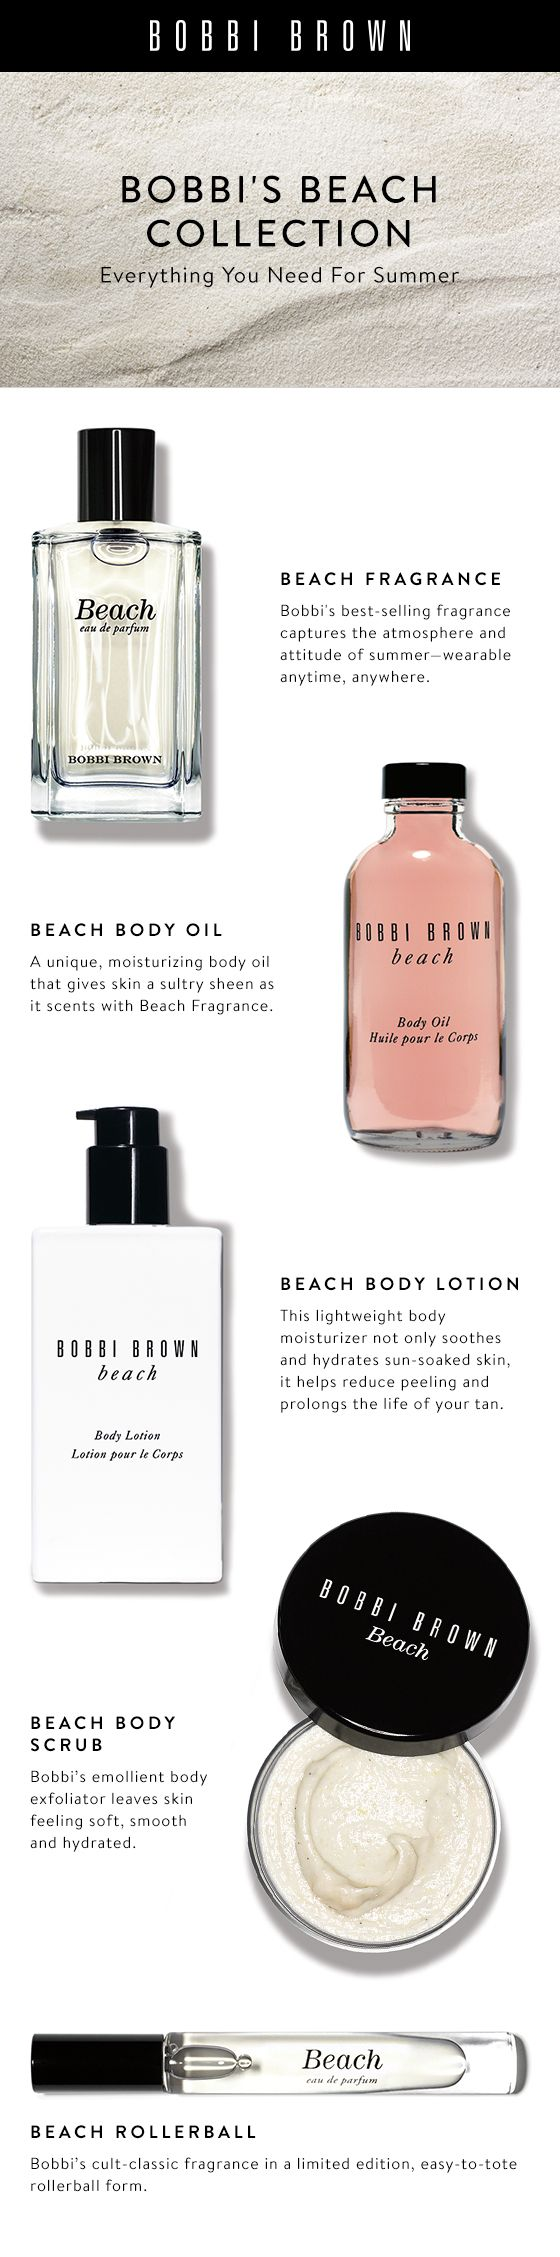 Everything You Need for Summer/ beach vacations beauty edition Bobbi brown